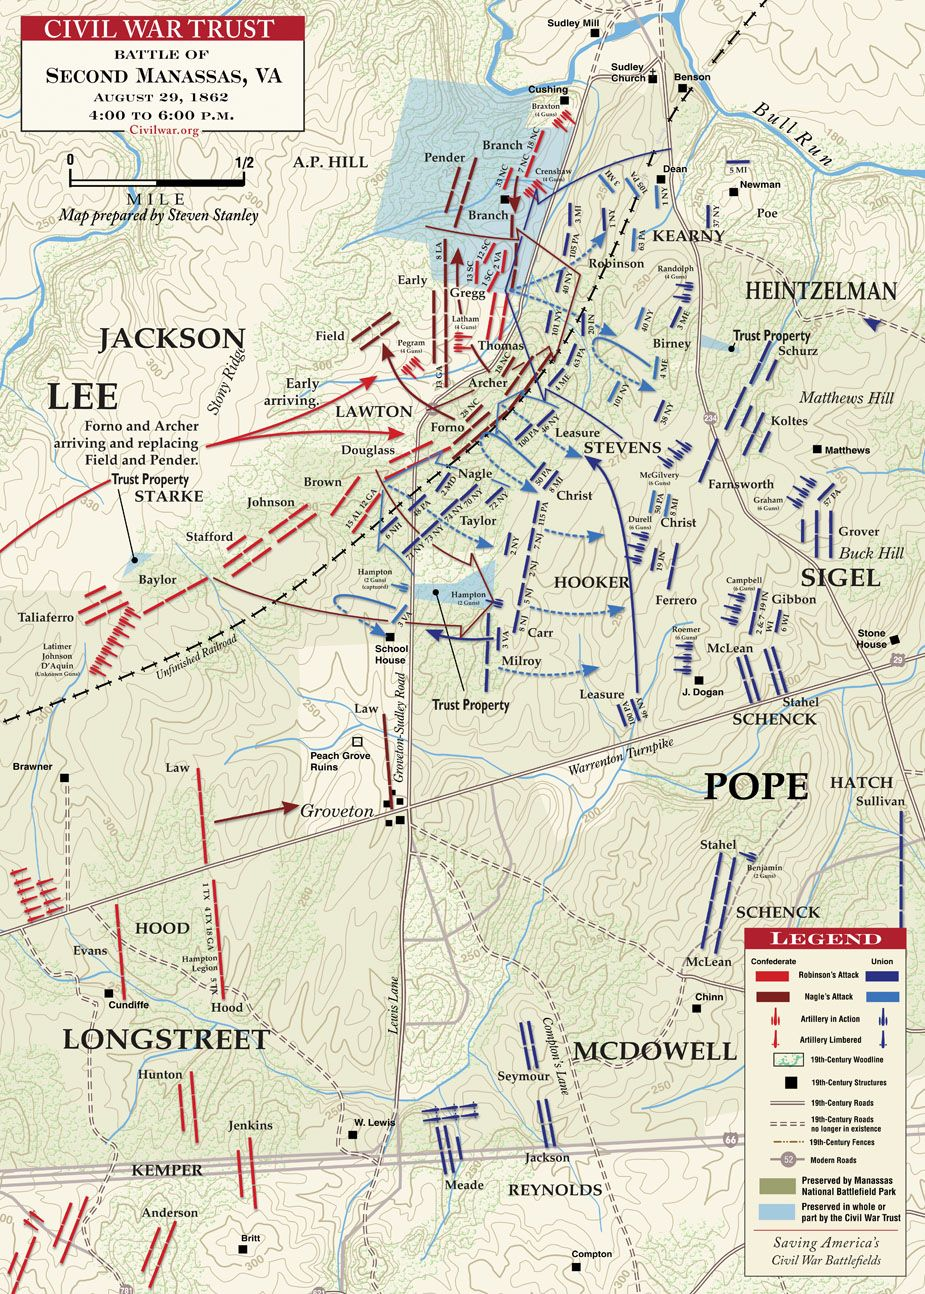 The Civil War Trust S Map Of The August 1862 Action At The Second Battle Of Manassas One Of The Great Civil War Battles In Virginia